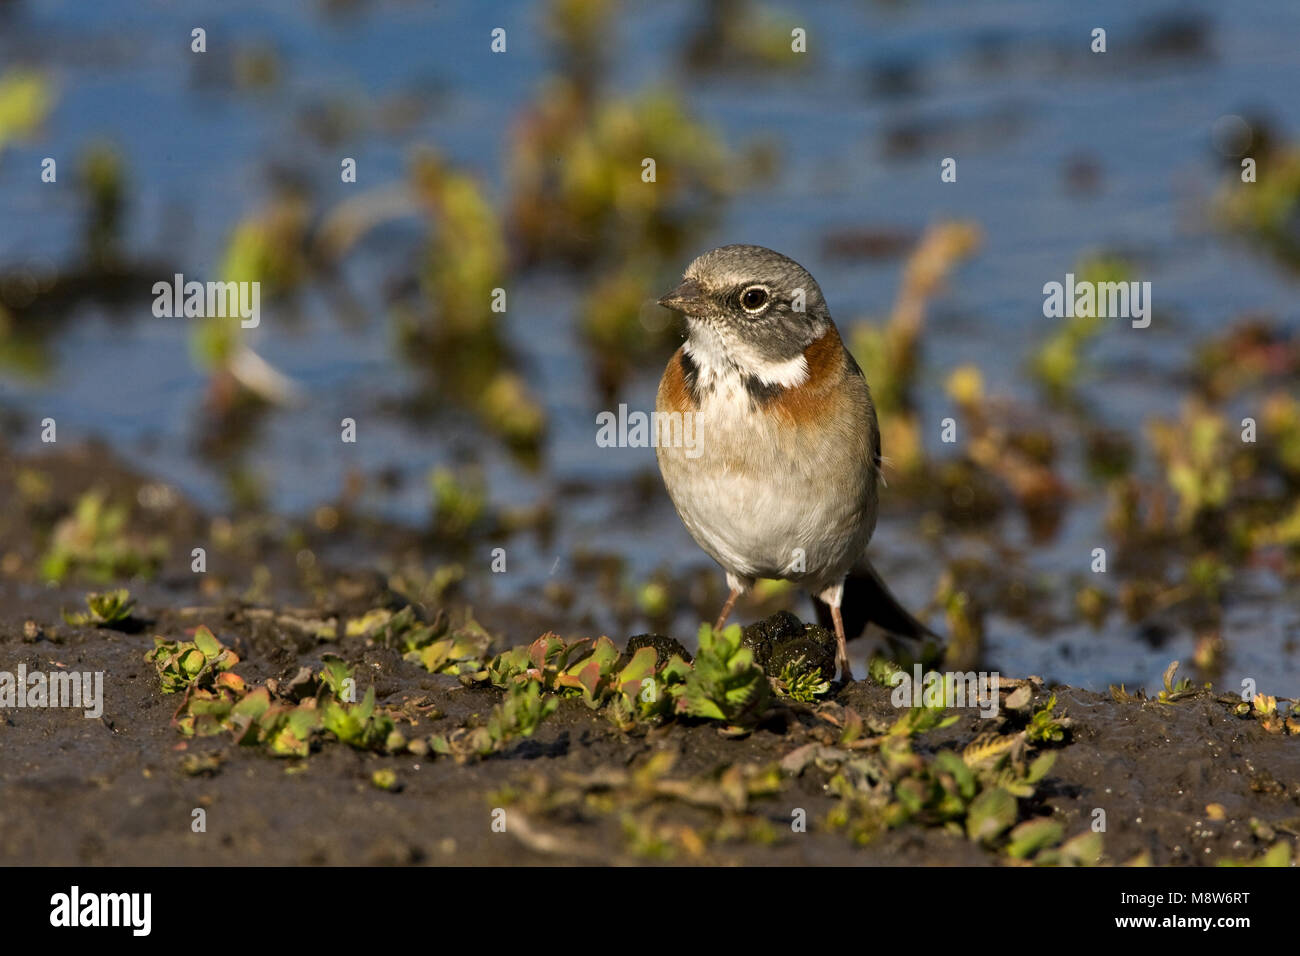 Roodkraaggors op de grond; Rufous-collared Sparrow on the ground Stock Photo